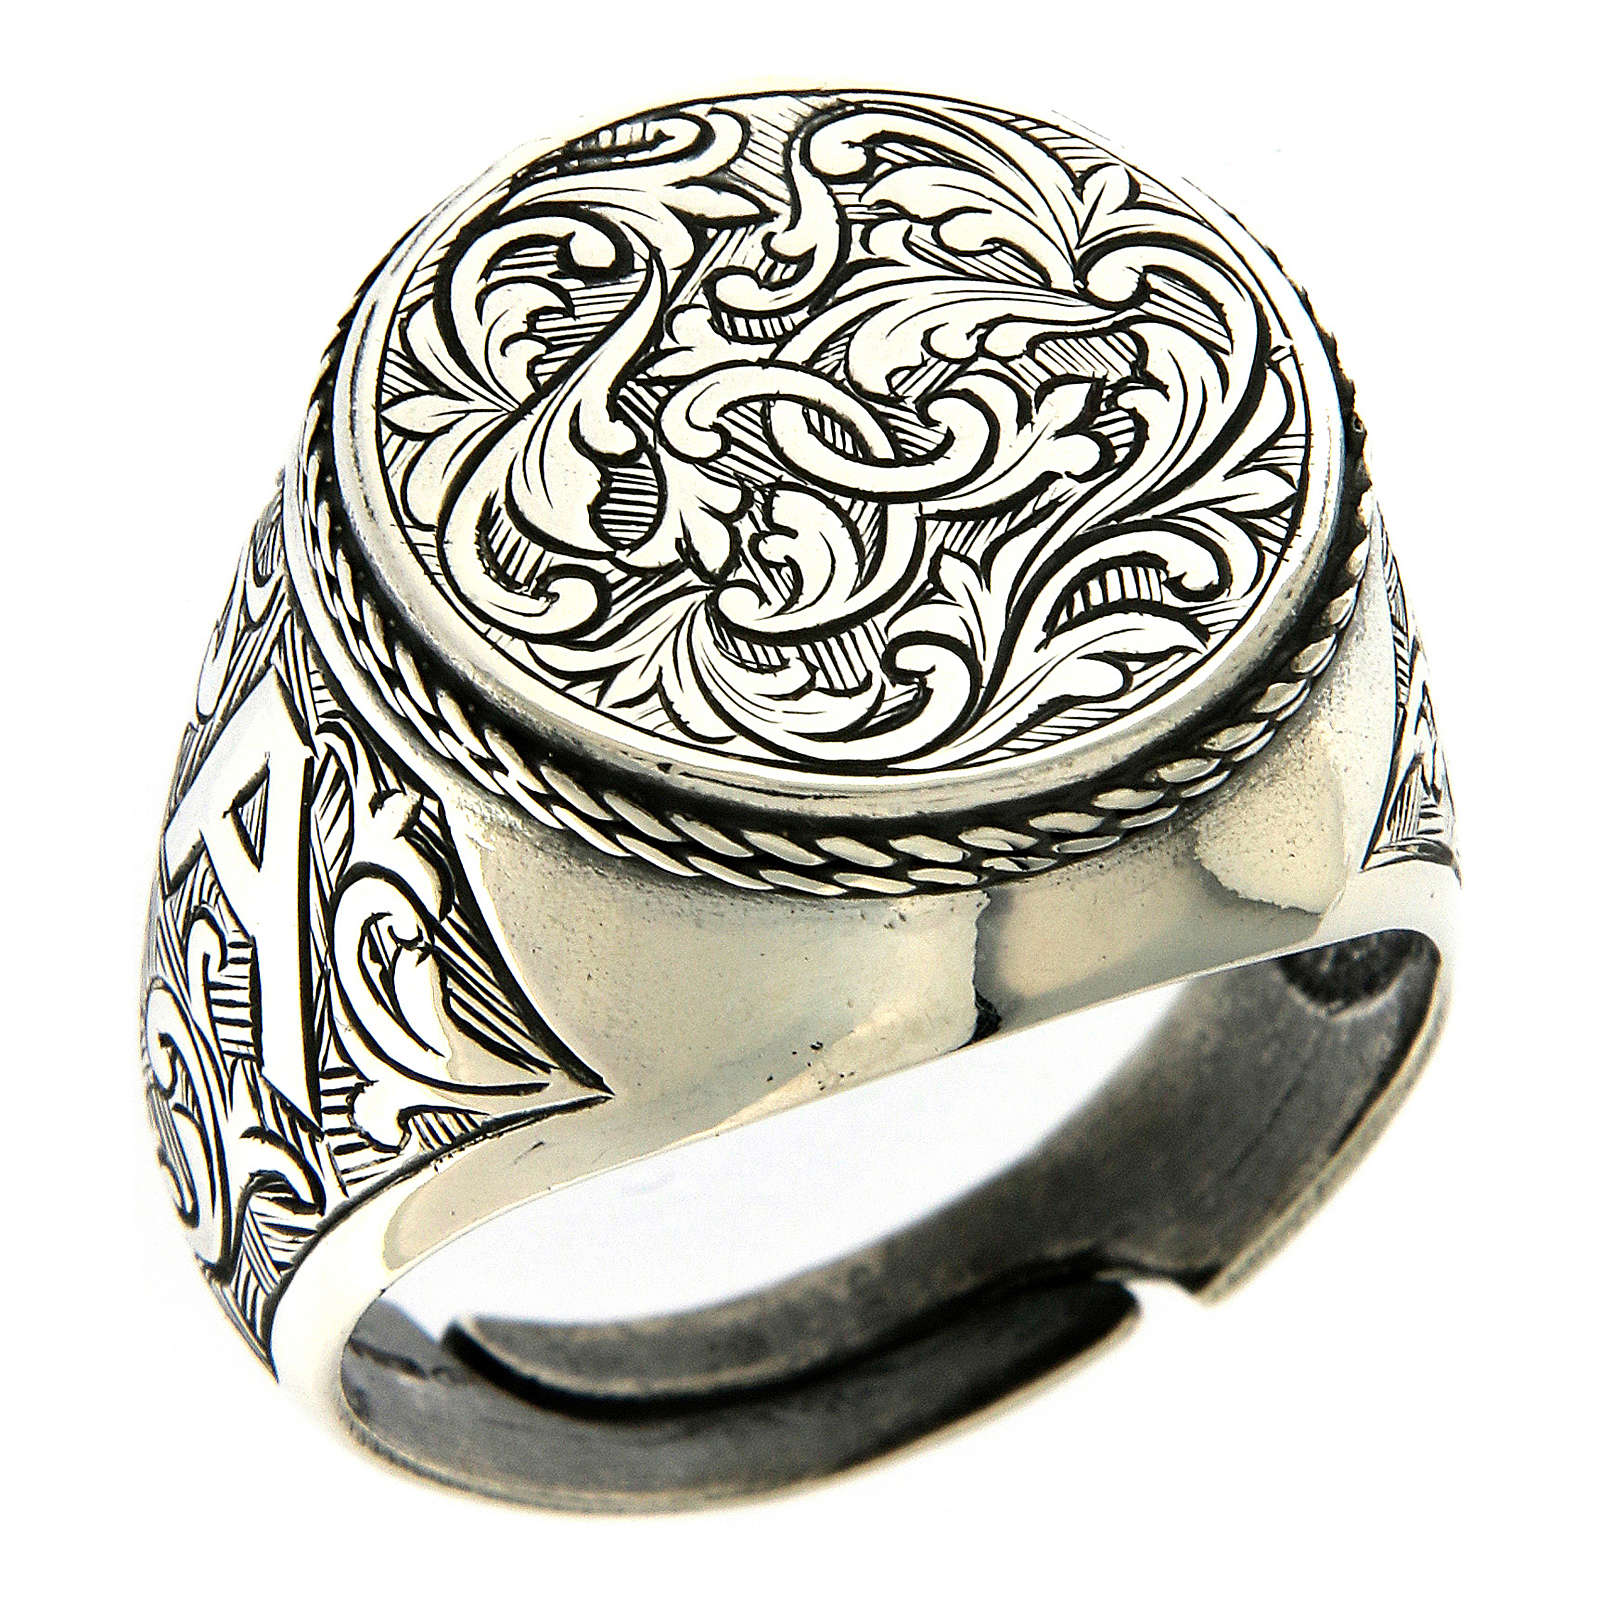 Ring with engraved floral pattern, 925 Silver 3